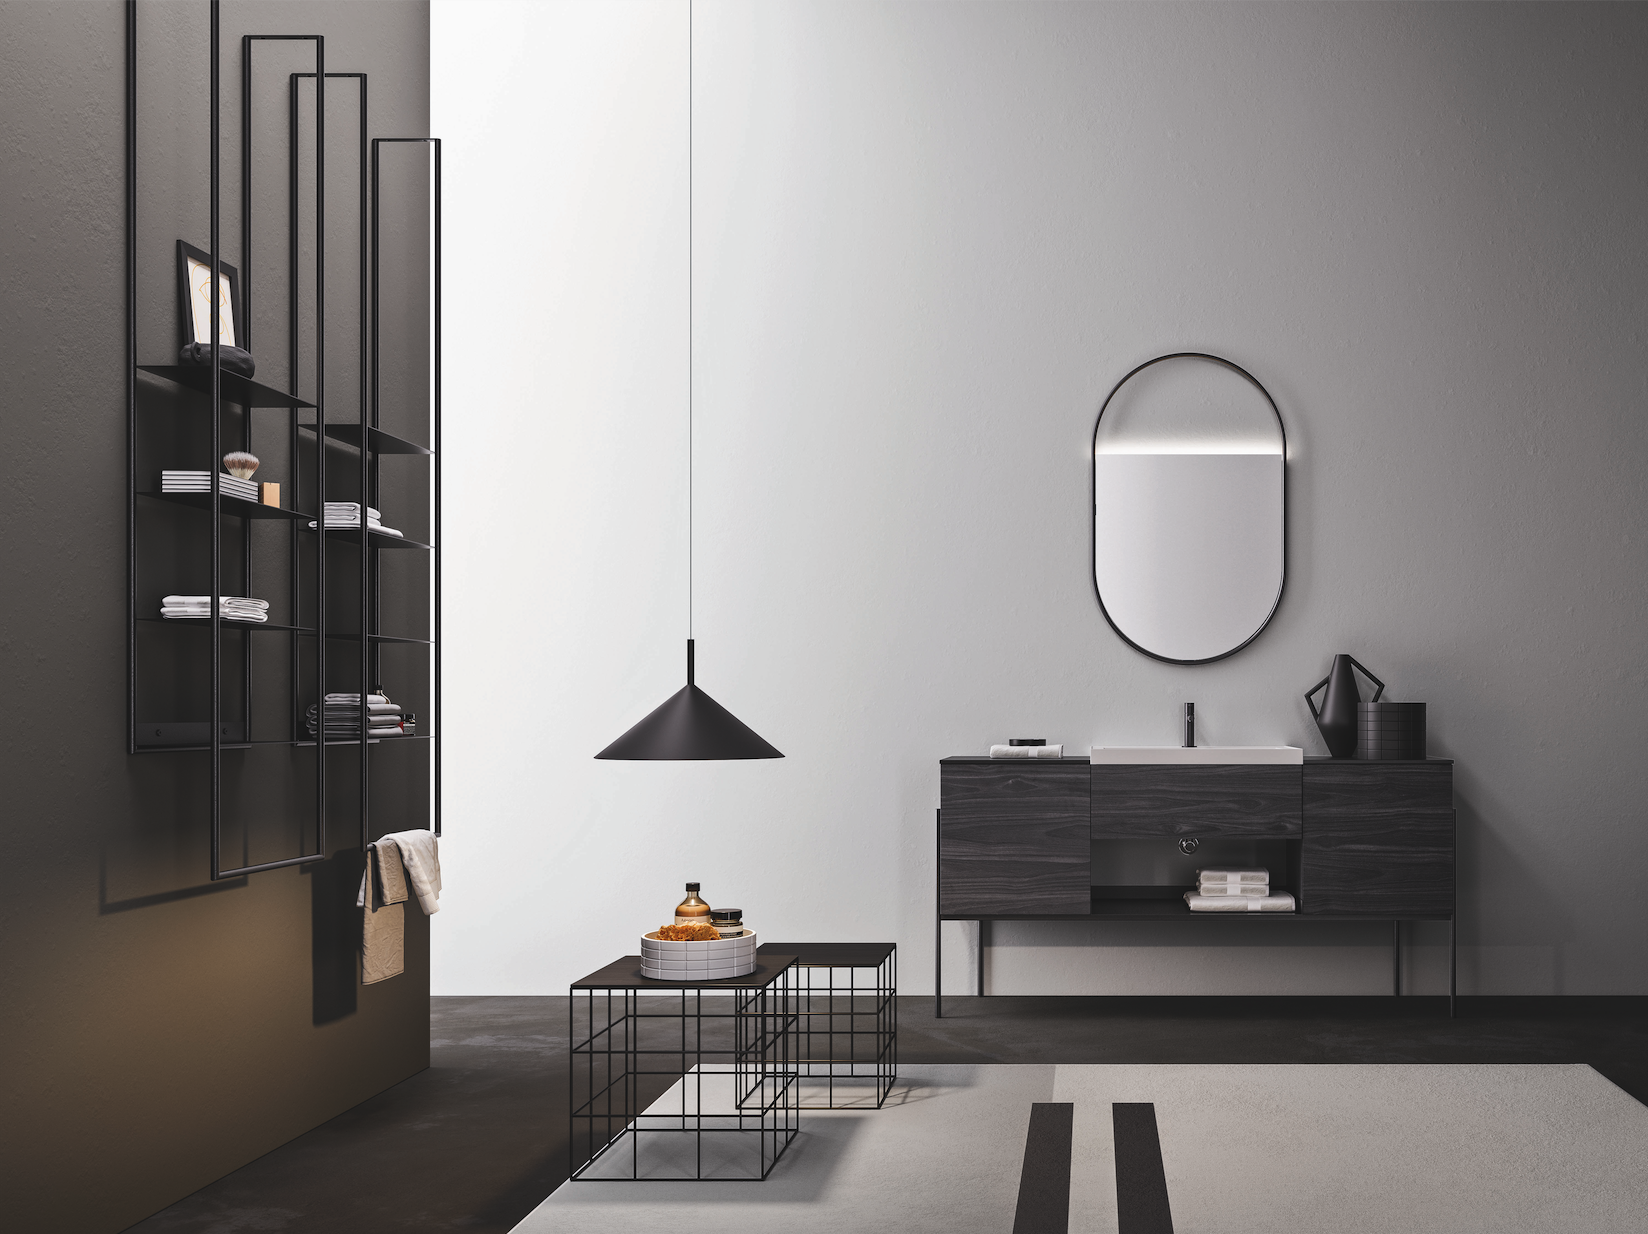 Ardeco | Metal for the bathroom: Industrial proposal